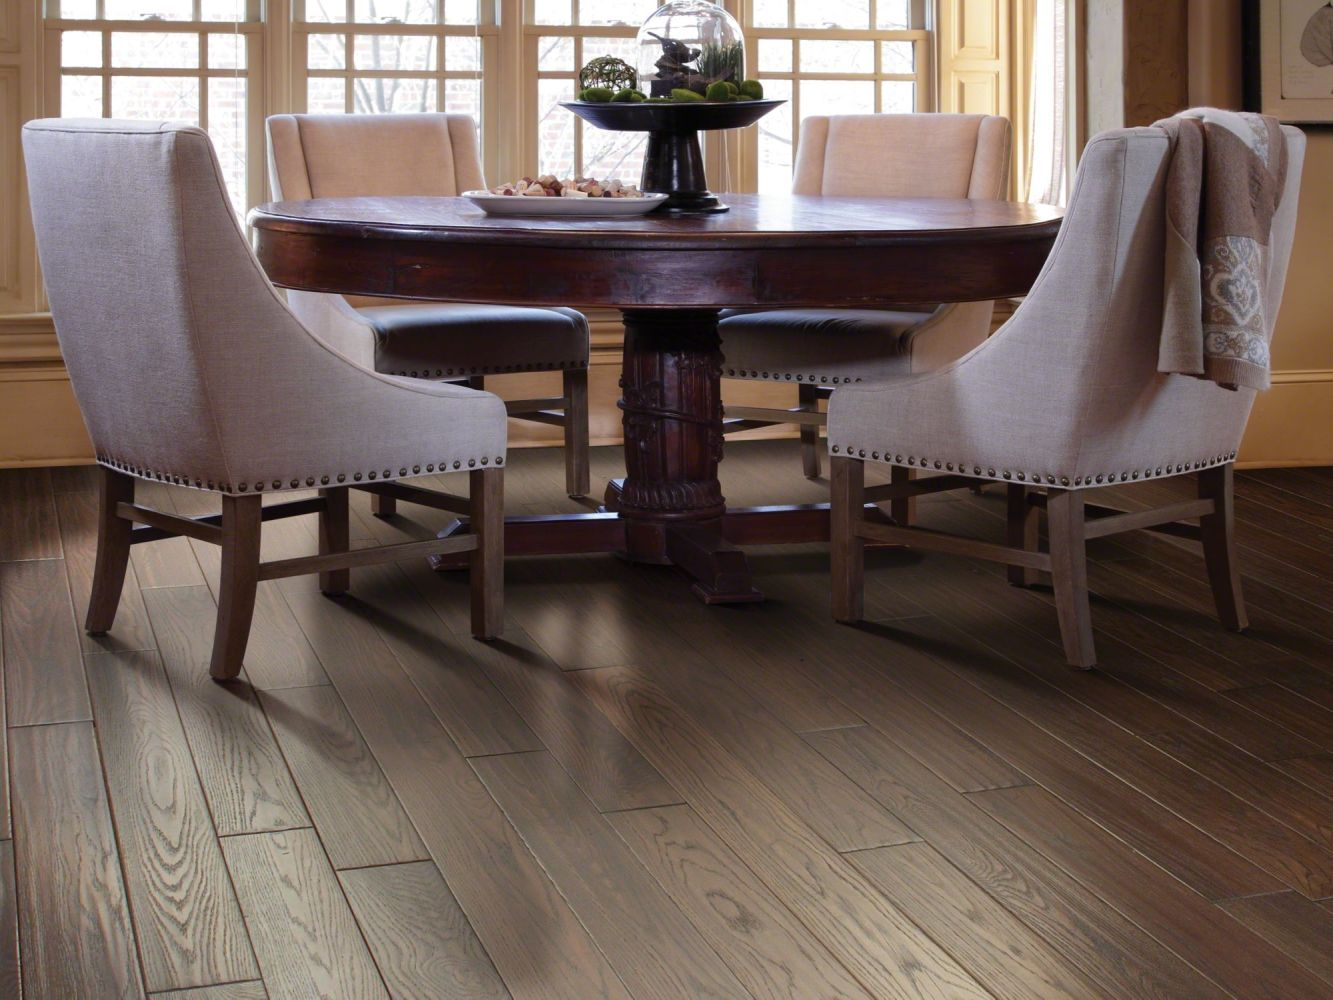 Shaw Floors Home Fn Gold Hardwood Kincade Tobler's Brown 00436_HW147